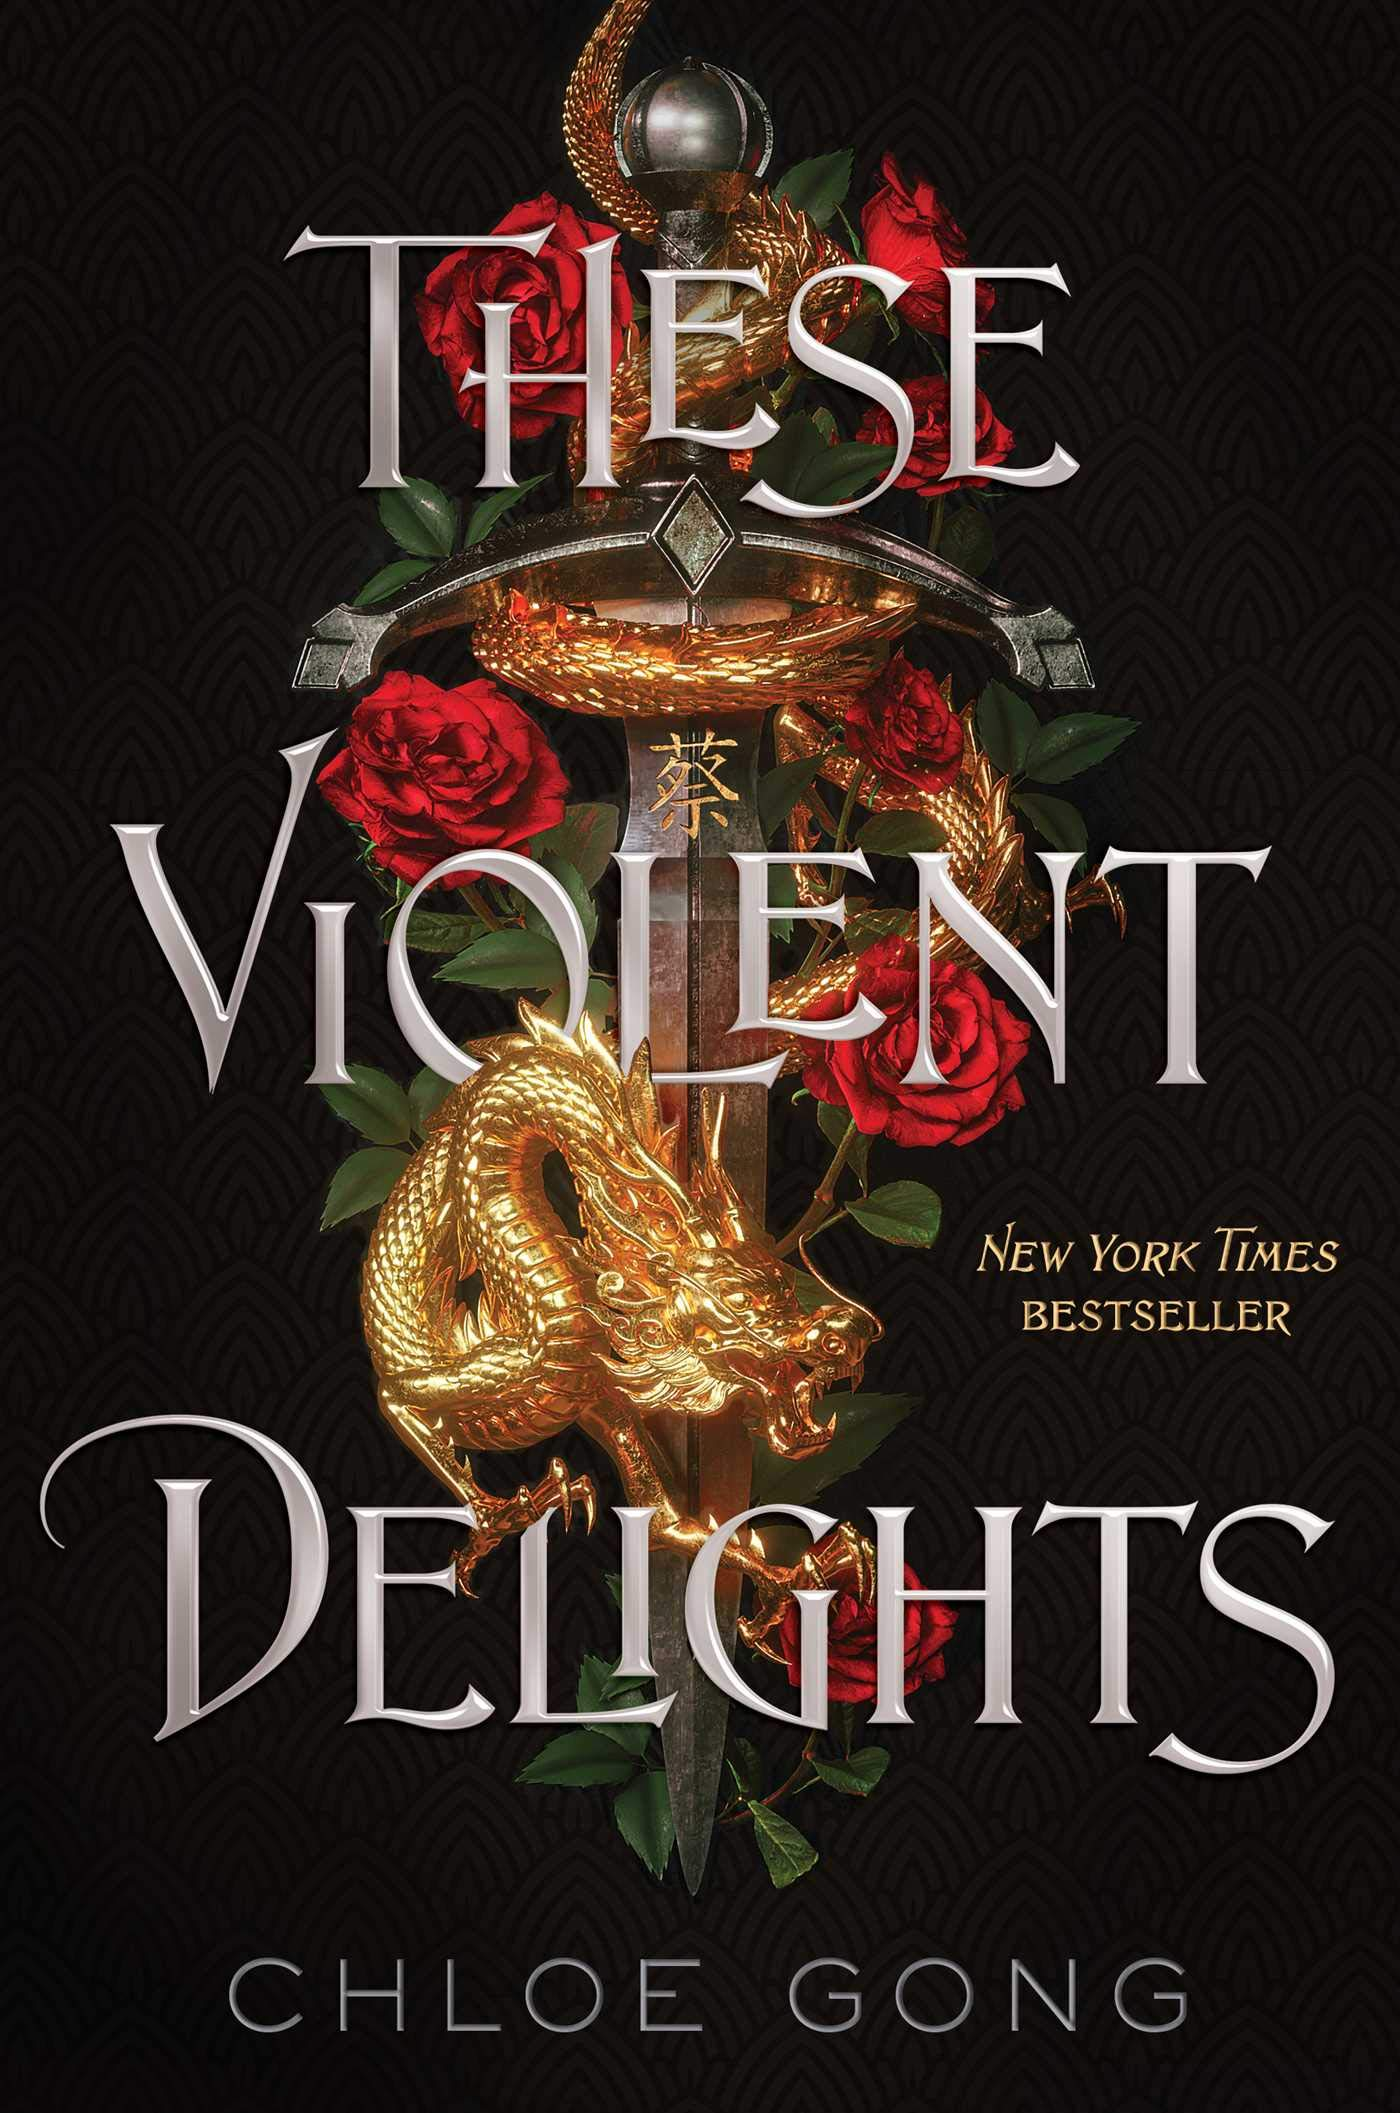 Amazon.com: These Violent Delights (9781534457690): Gong, Chloe: Books